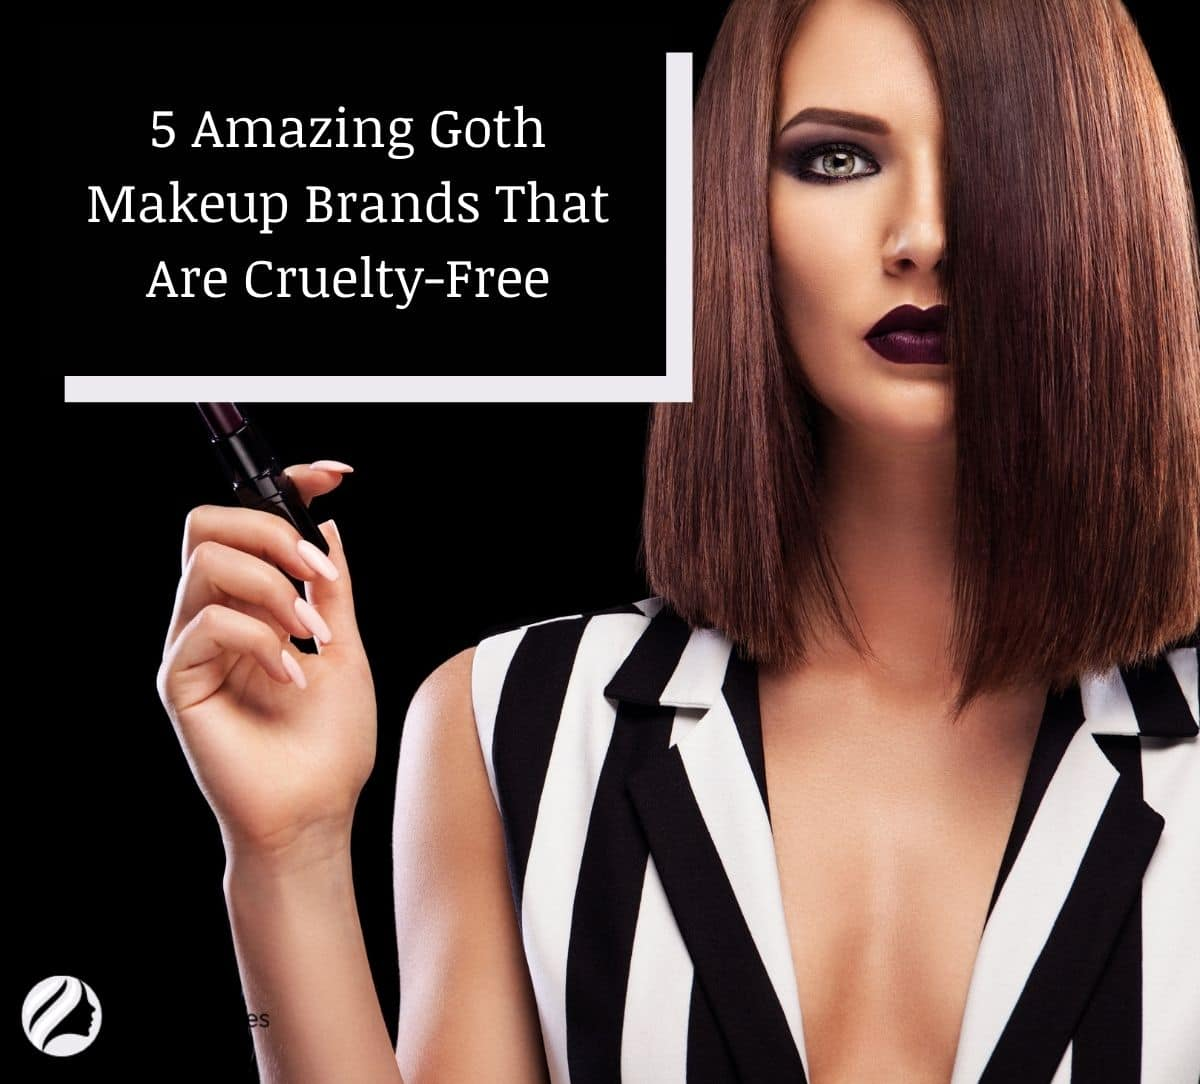 a goth lady holding a black lipstick which is one of the goth makeup brands that are cruelty-free